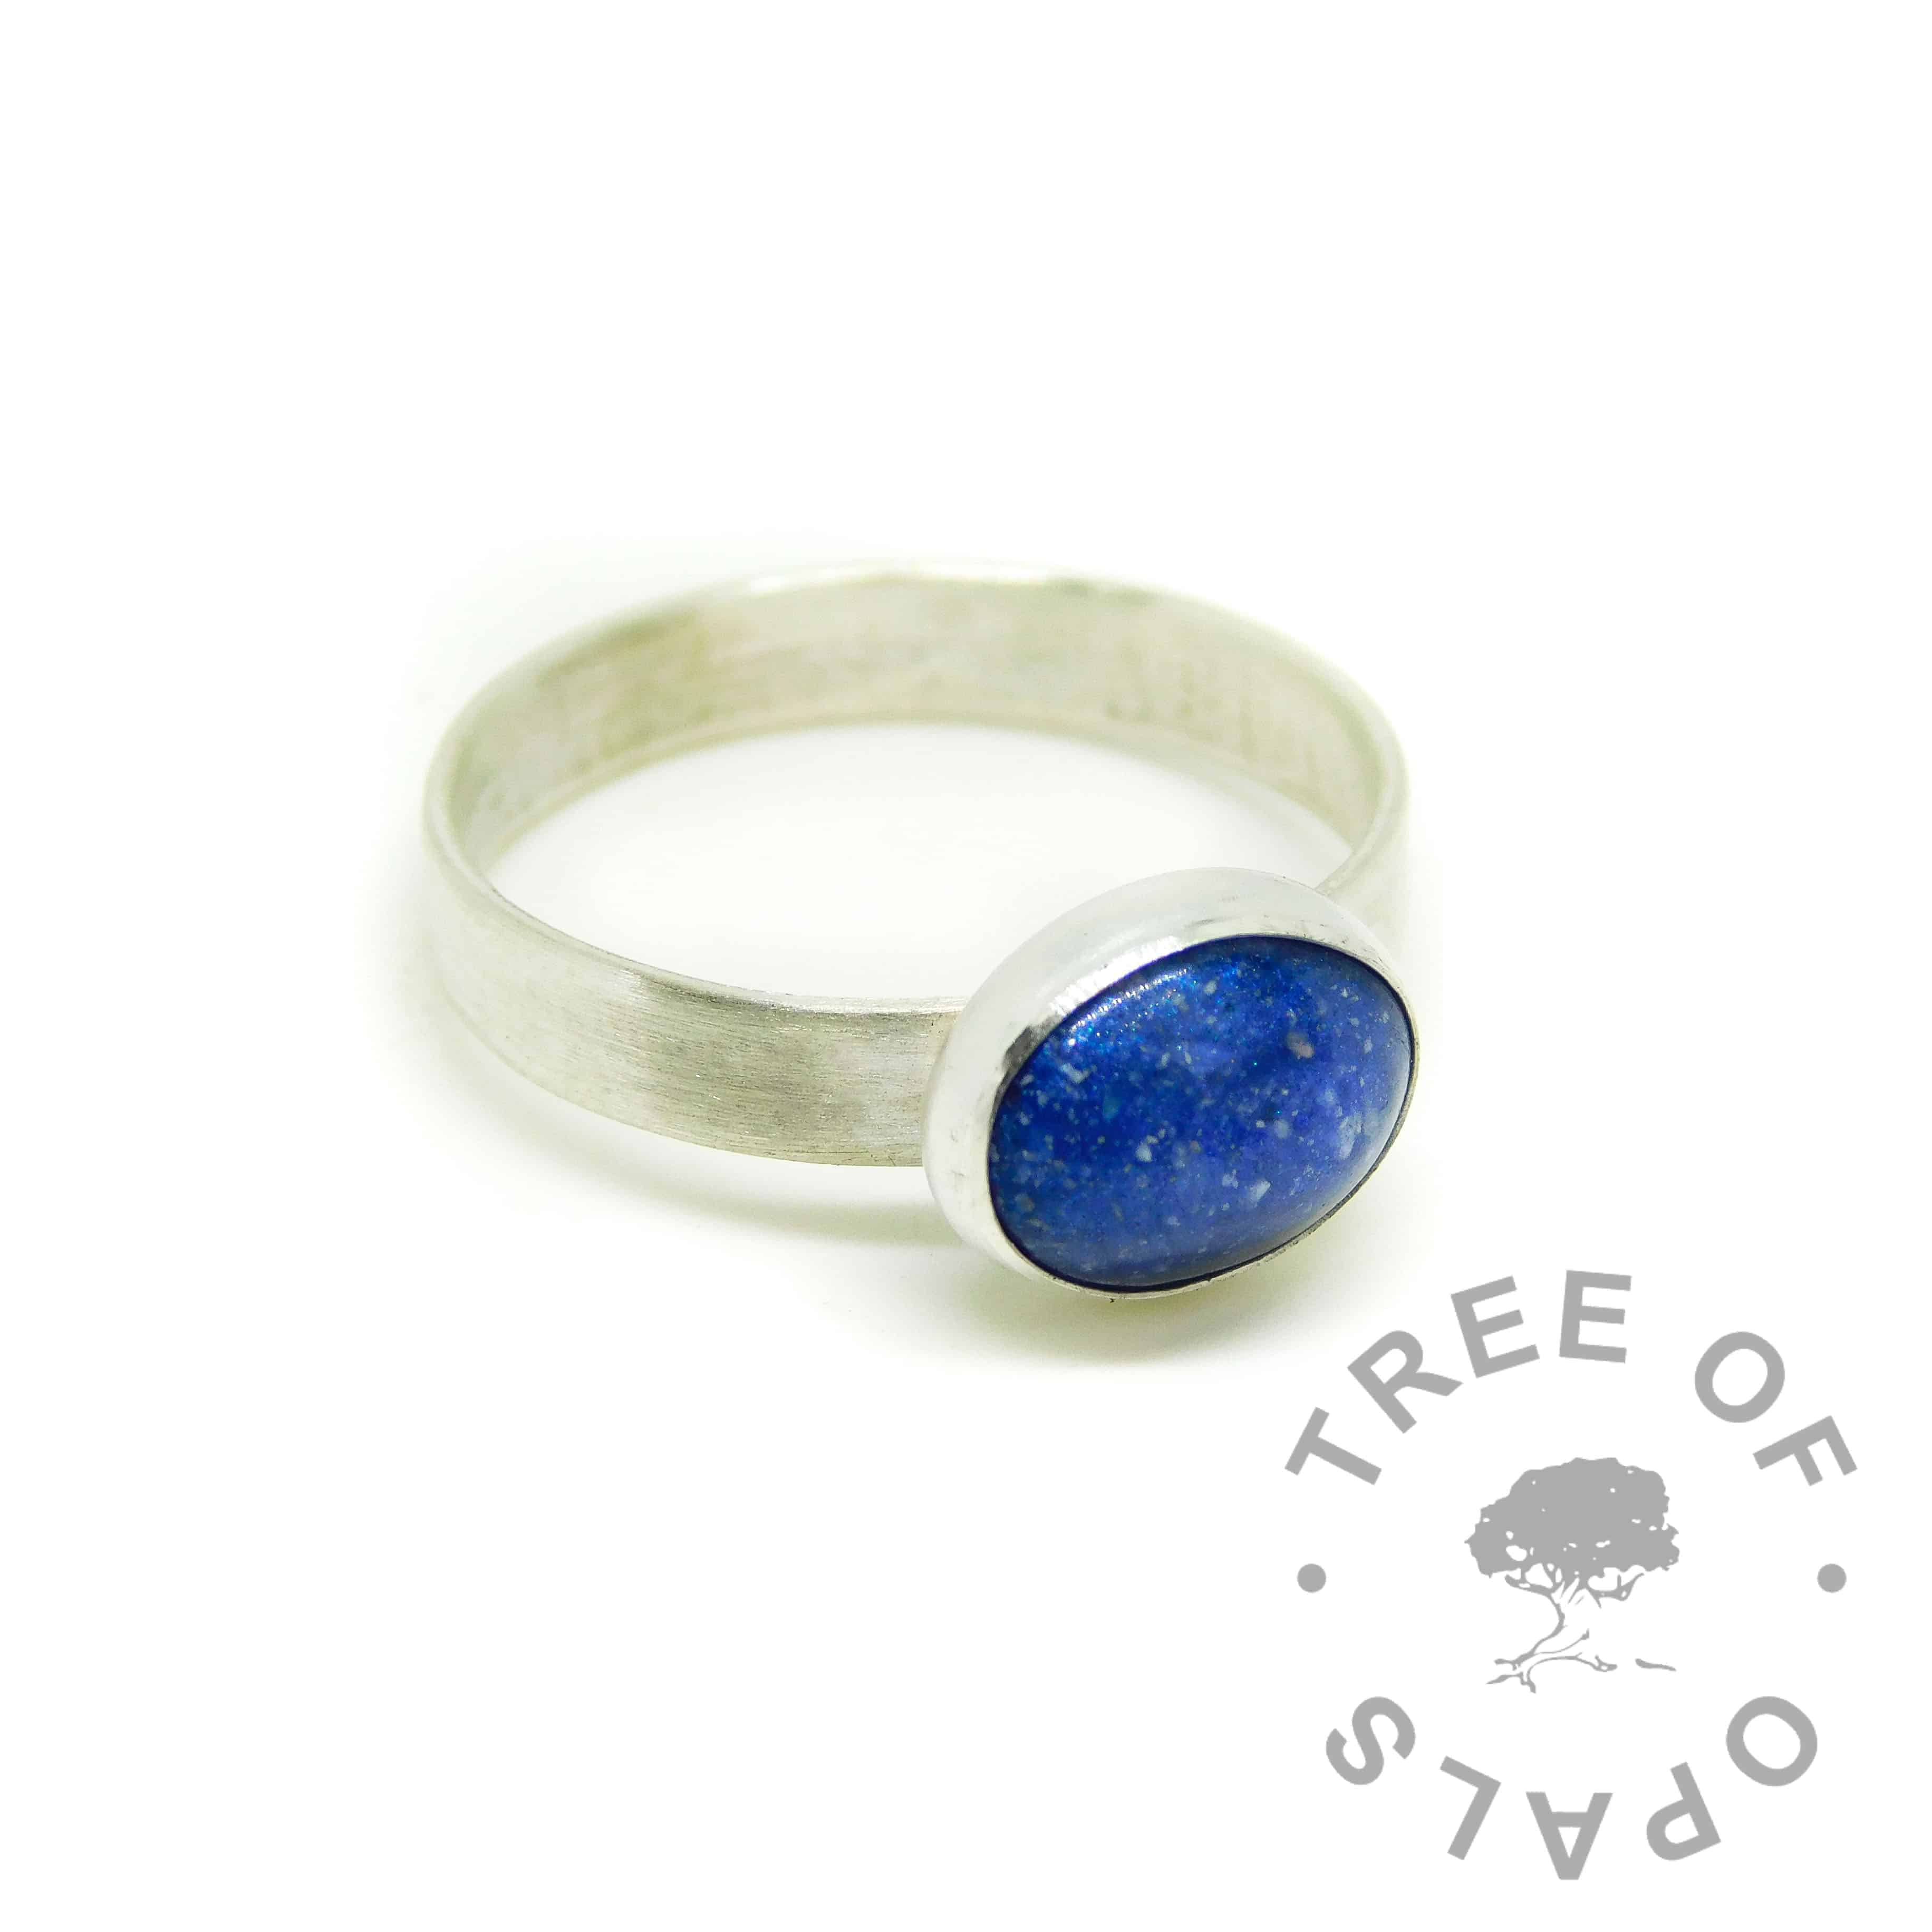 Cremation ash ring with Aegean blue resin sparkle mix. Brushed band ring solid sterling EcoSilver